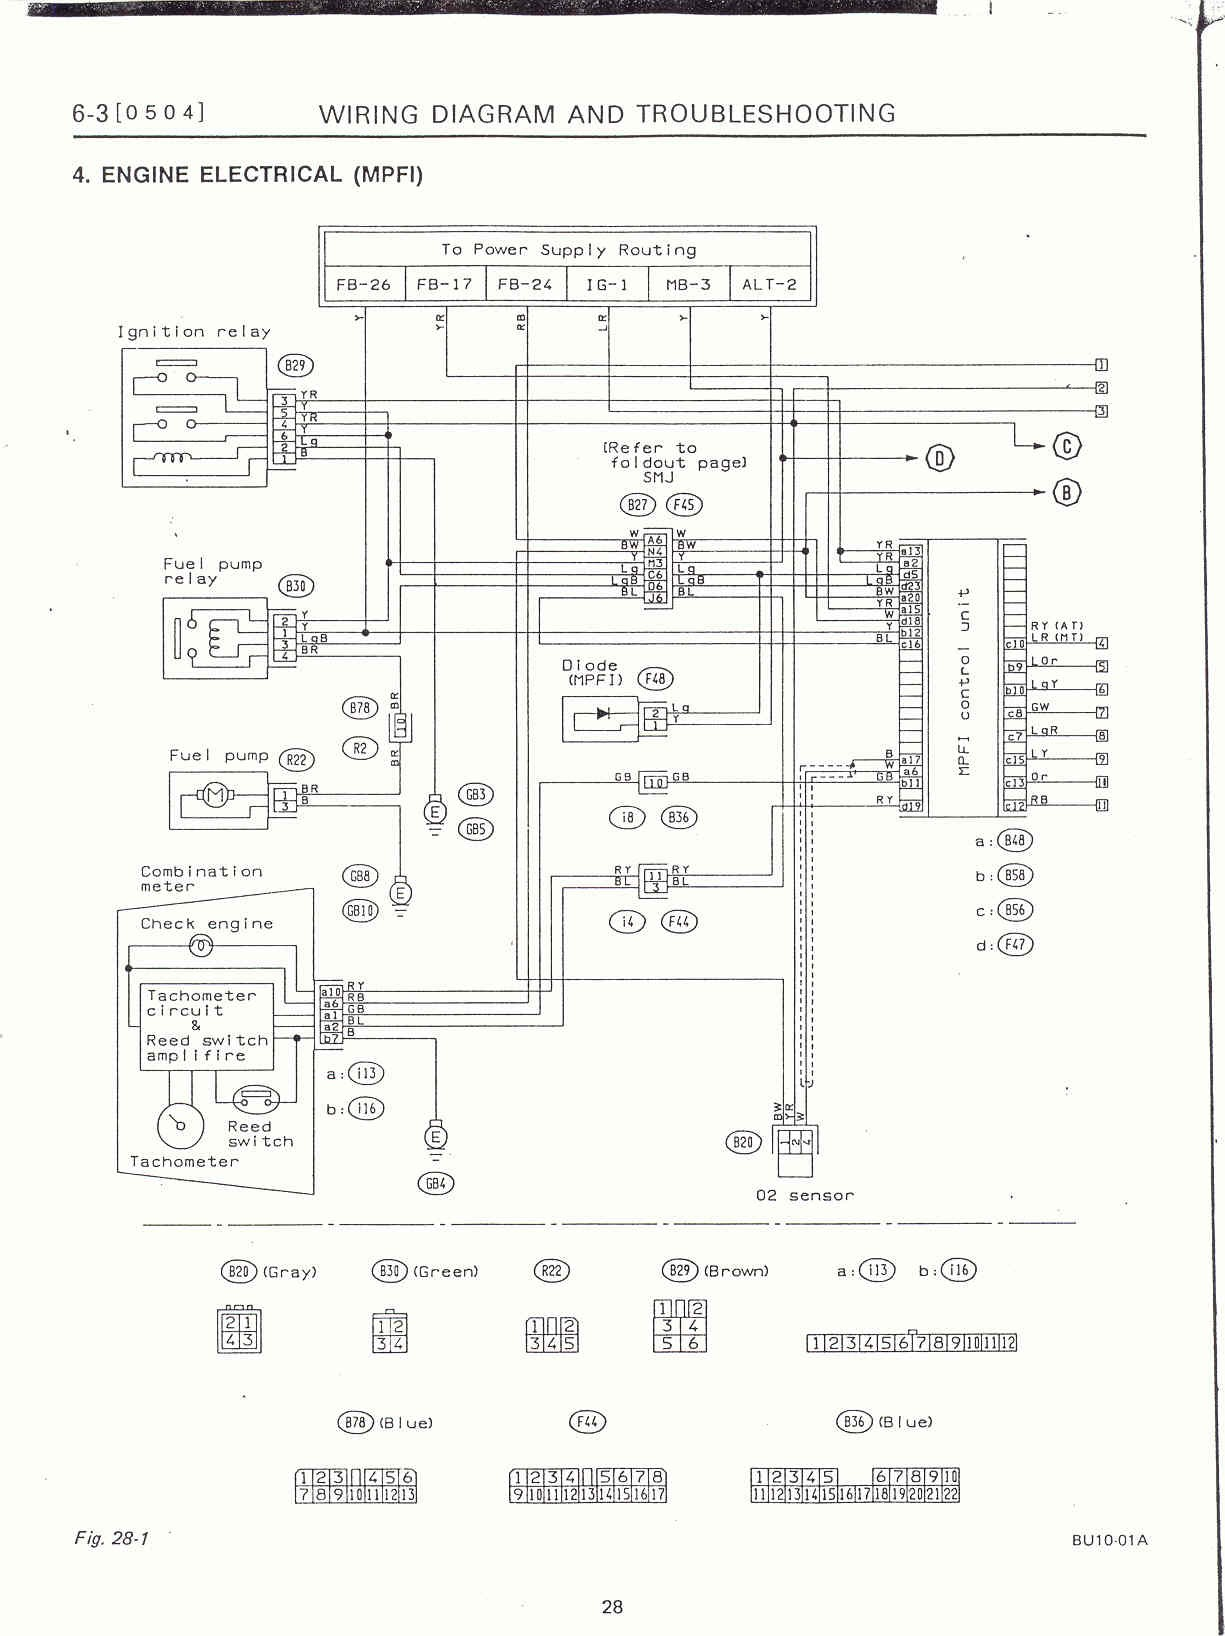 subaru legacy engine diagram addition 2000 subaru impreza 2 5 rs rh detoxicrecenze com 99 Subaru Impreza Headlight Wiring Diagram 99 Subaru Impreza Headlight Wiring Diagram